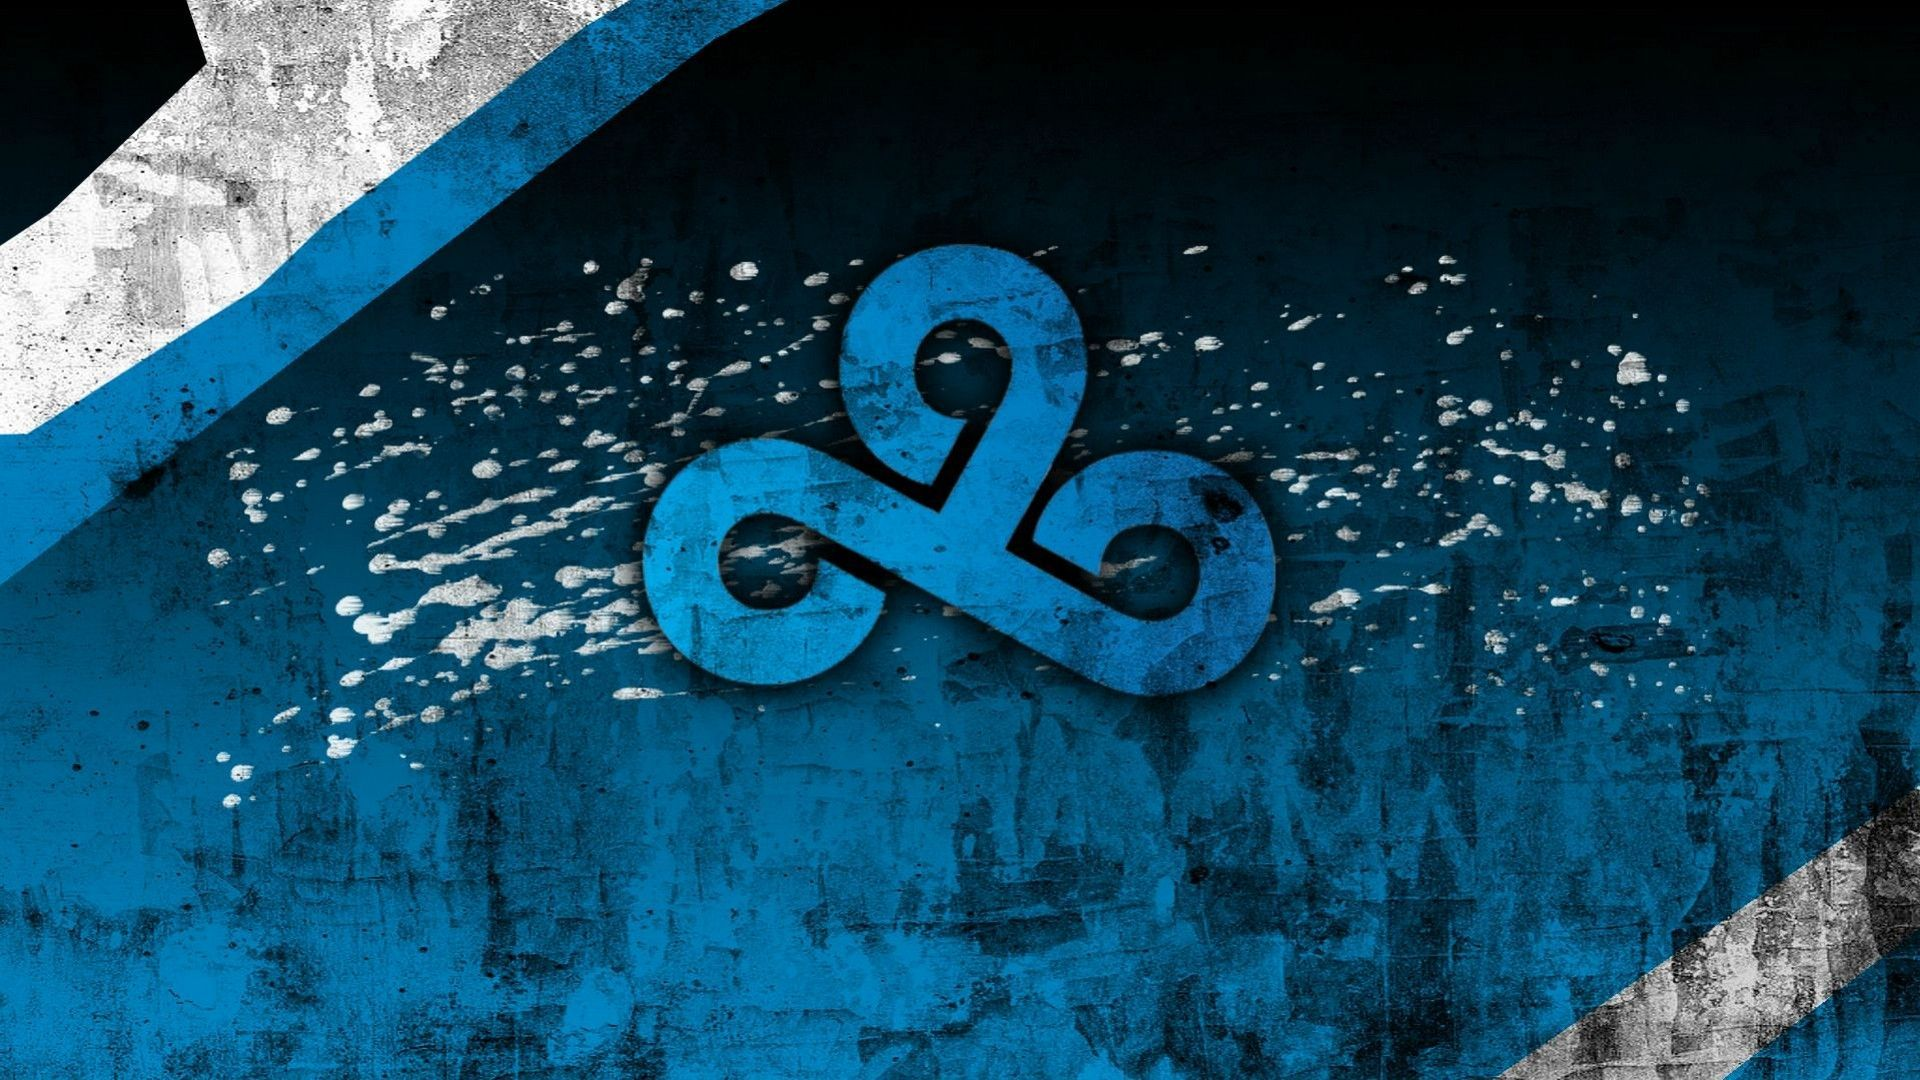 1920x1080 Cloud 9 Games Desktop Backgrounds | Wallpaper | Pinterest ...